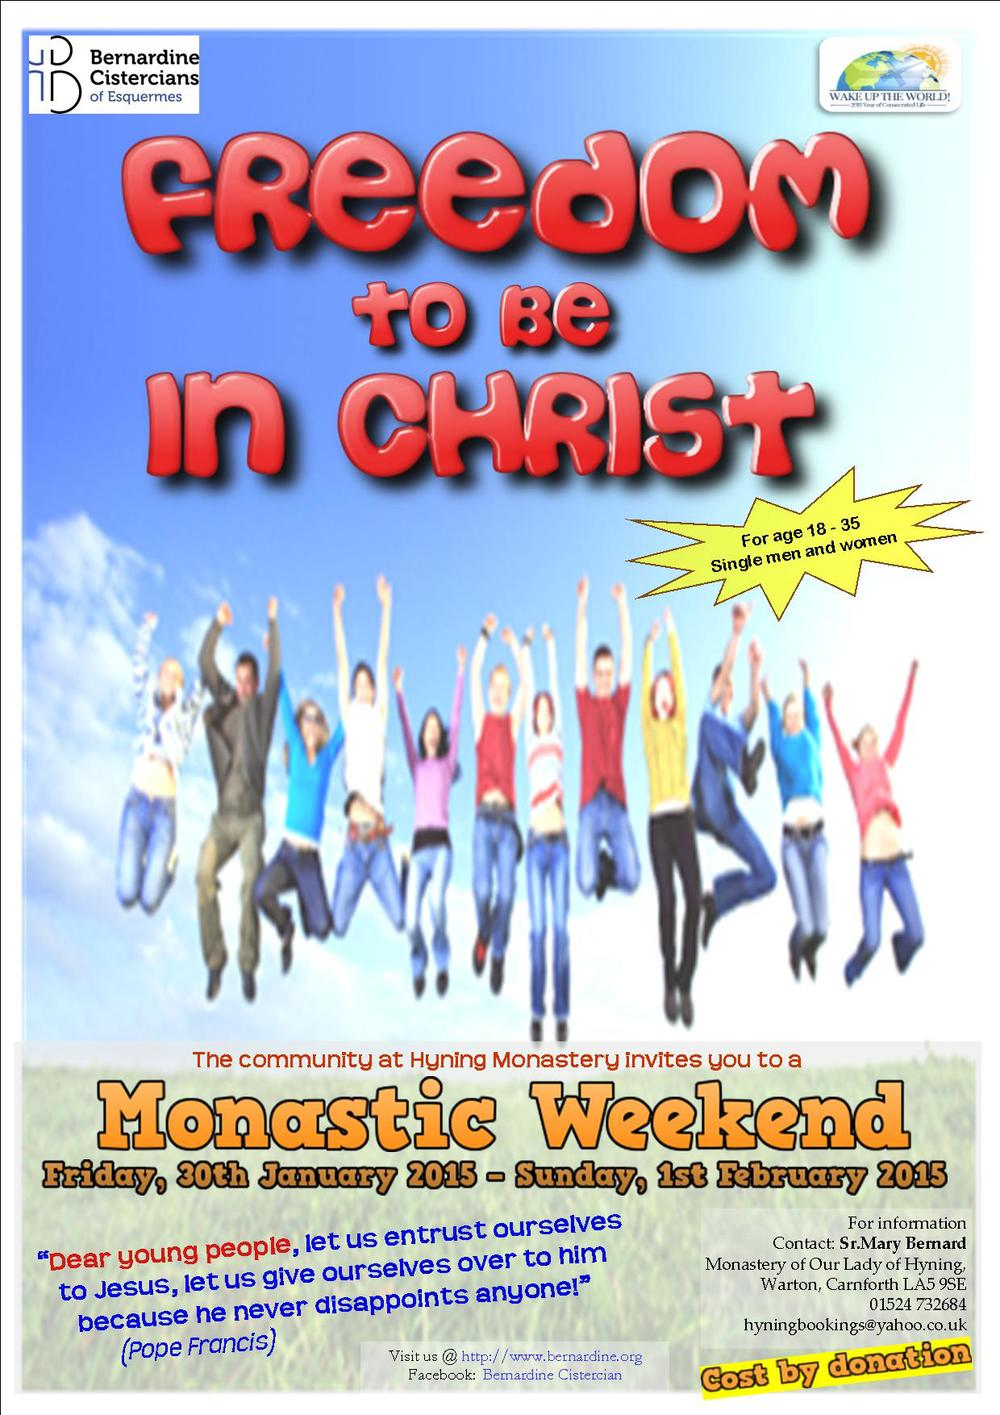 With respect to those who could not come for the event for any reason, be sure that we are pleased if you would help us to spread and forward this invitation to the appropriate ones. By doing so, we surely take part in the responsibility of the Church. Pray also that this event may encourage young people to respond to God's love and encourage all parents to offer a generous heart in supporting their children to live a consecrated life. God bless you!